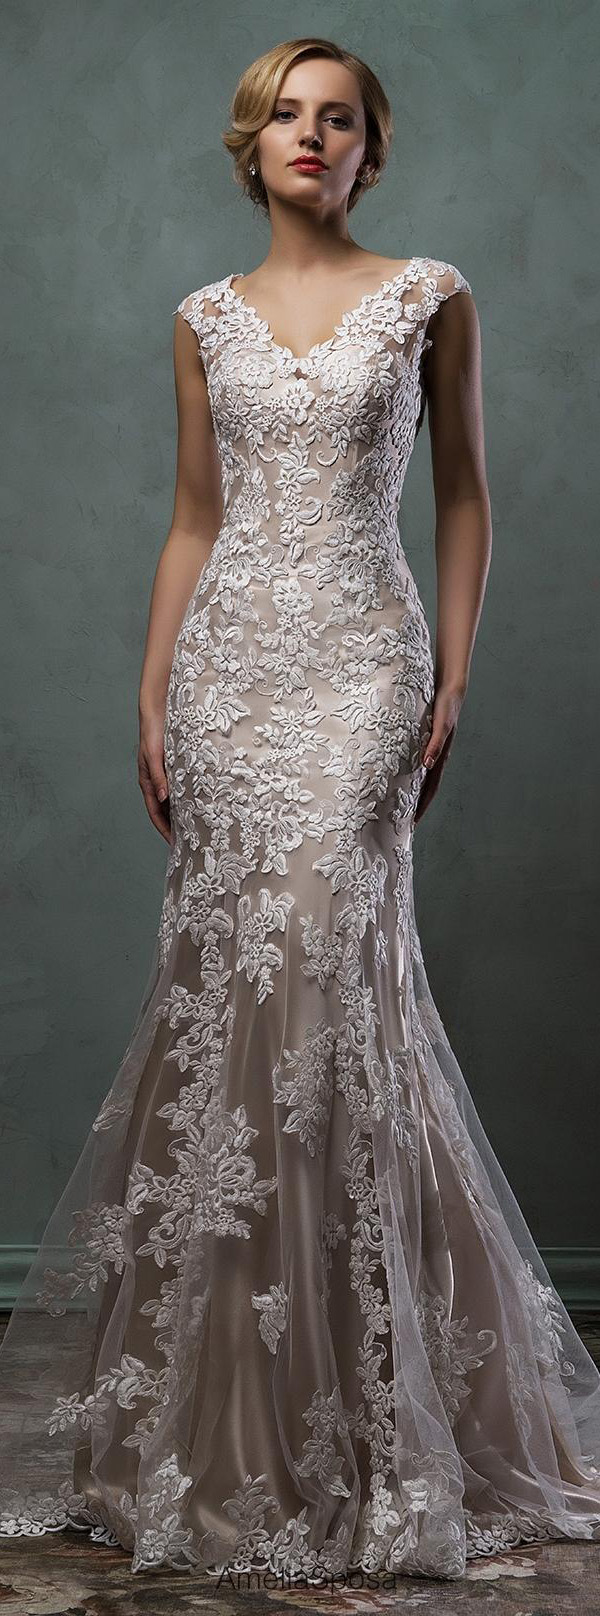 meimaid lace wedding dresses in long length